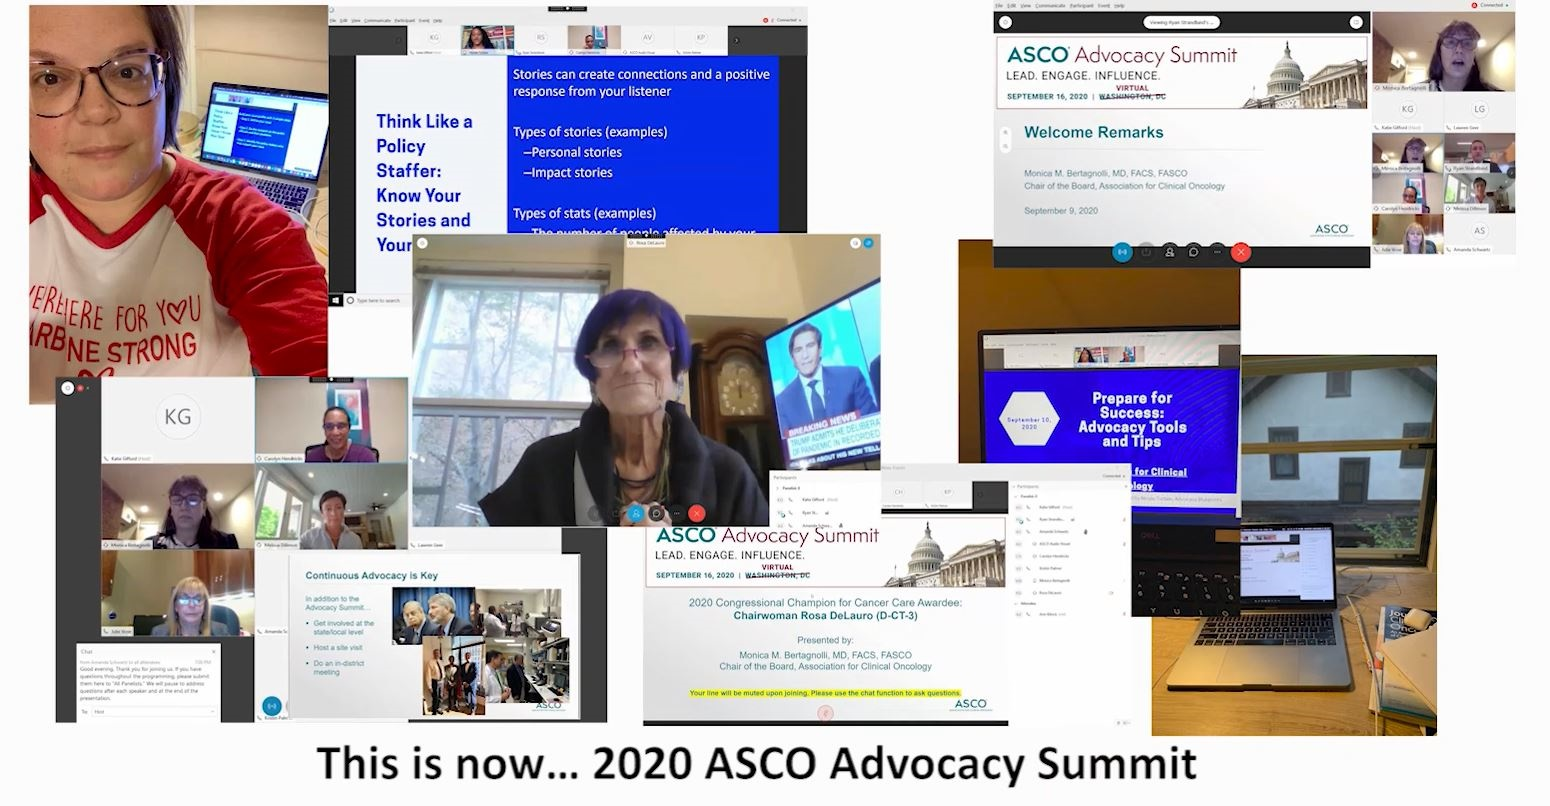 Images from 2020 Advocacy Summit